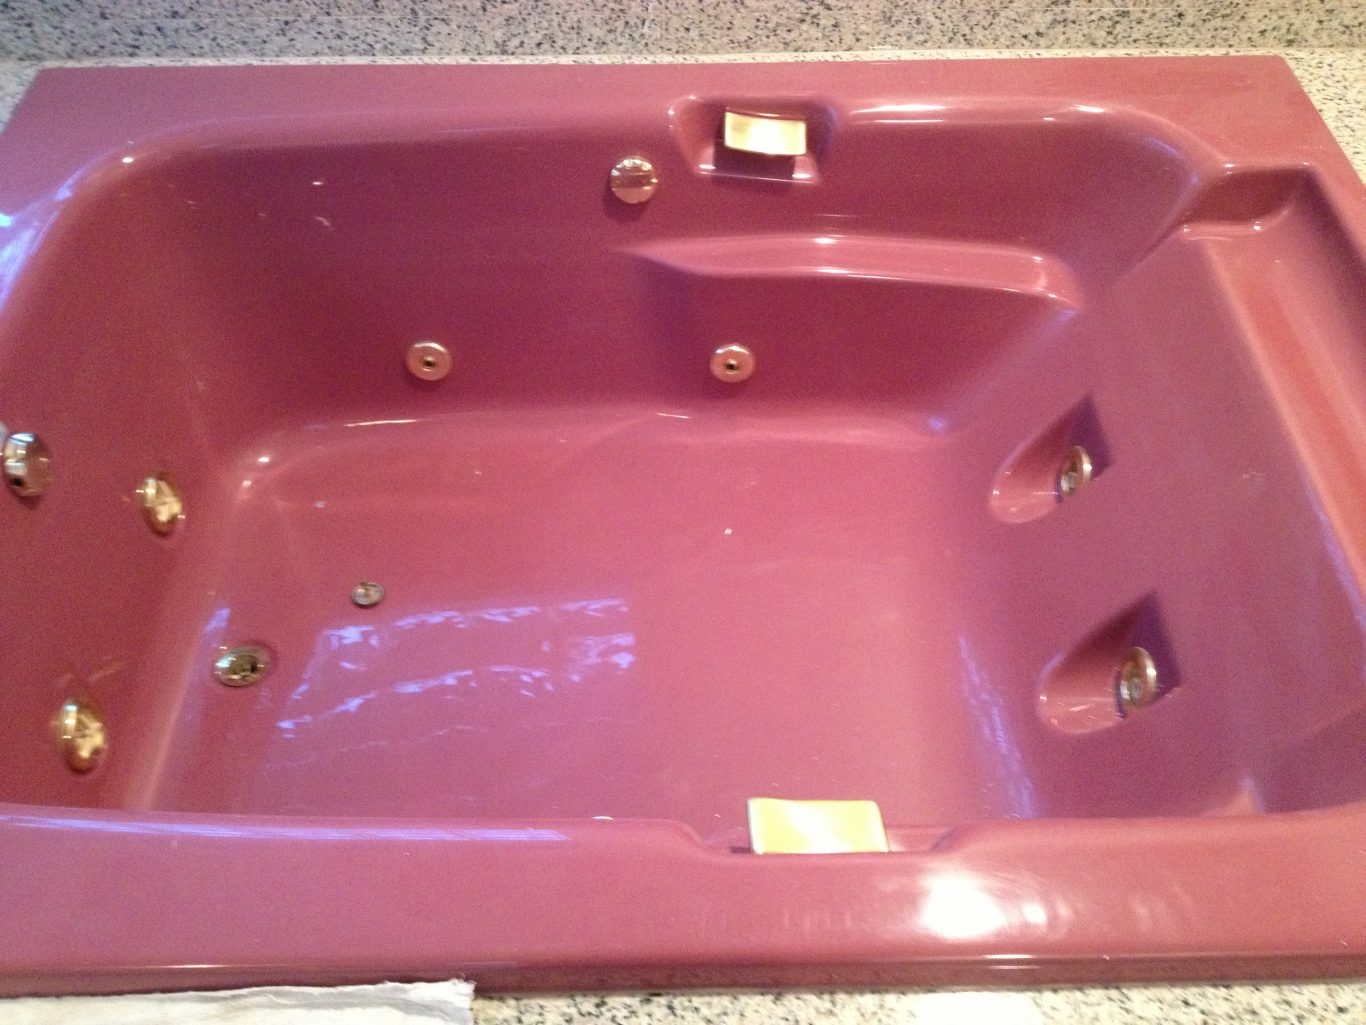 Before-Pink Jacuzzi